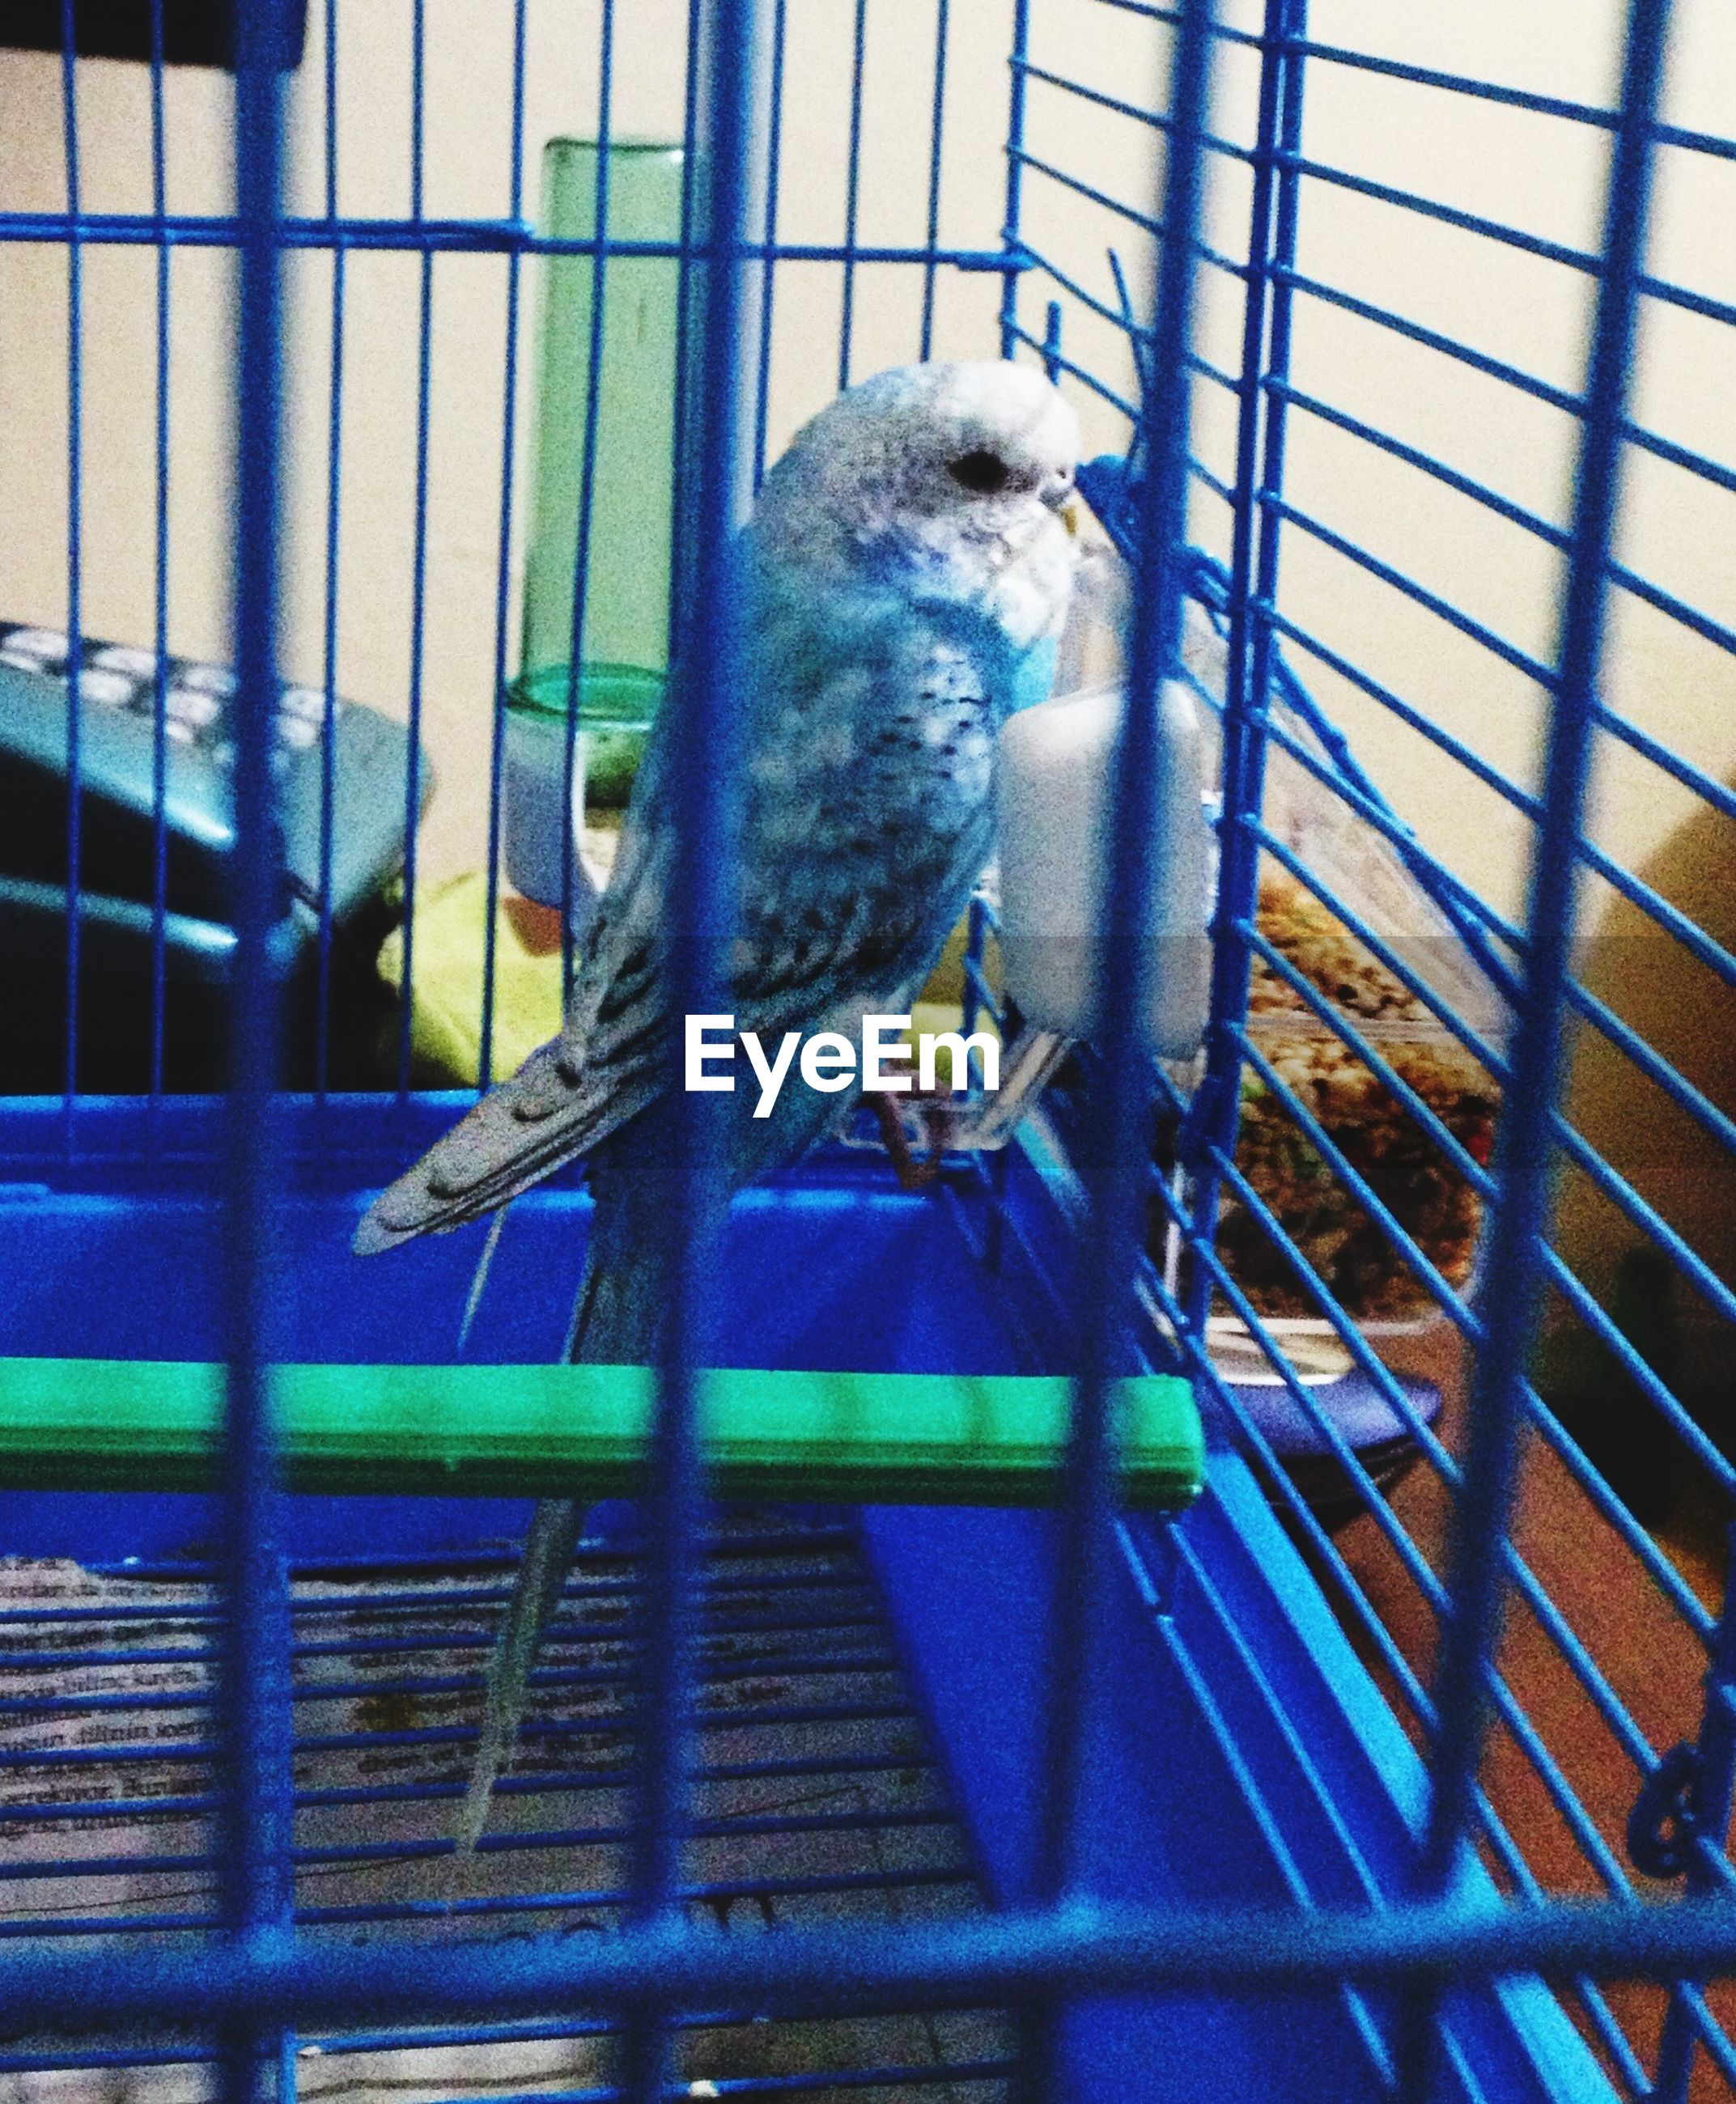 indoors, animal themes, one animal, cage, glass - material, animals in the wild, window, wildlife, bird, animals in captivity, transparent, full length, built structure, reflection, day, low angle view, architecture, no people, pattern, perching